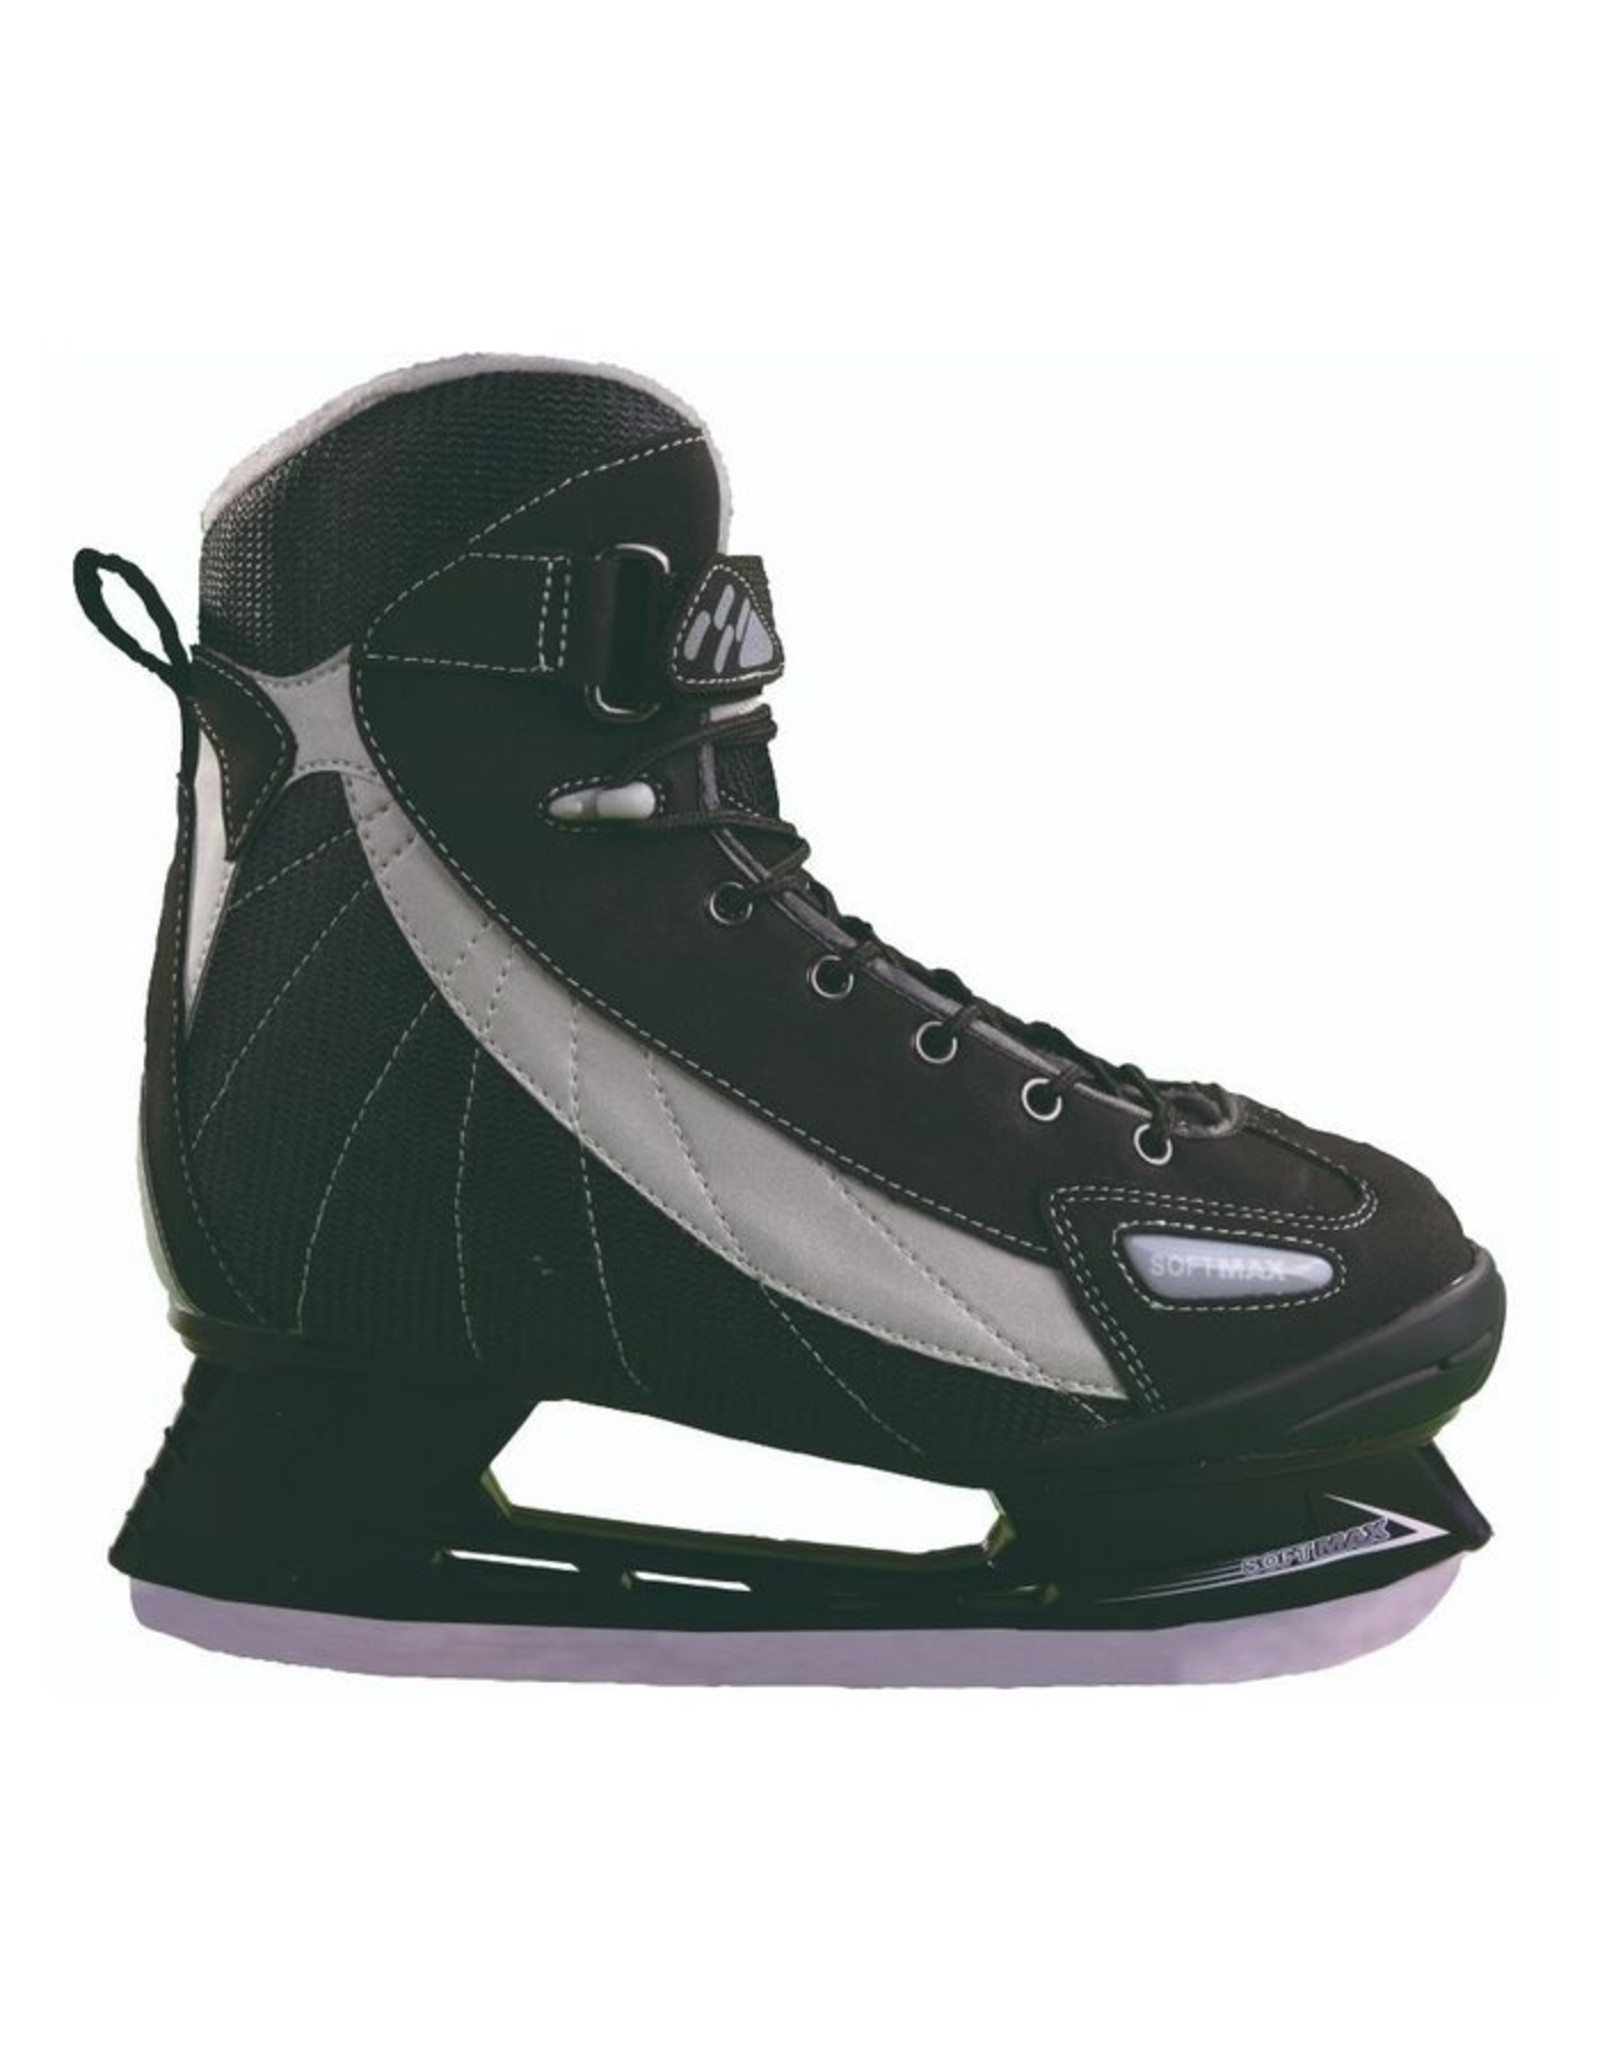 SOFTMAX S-957 MEN ICE SKATE Doublure Thinsulate BLK-GRY